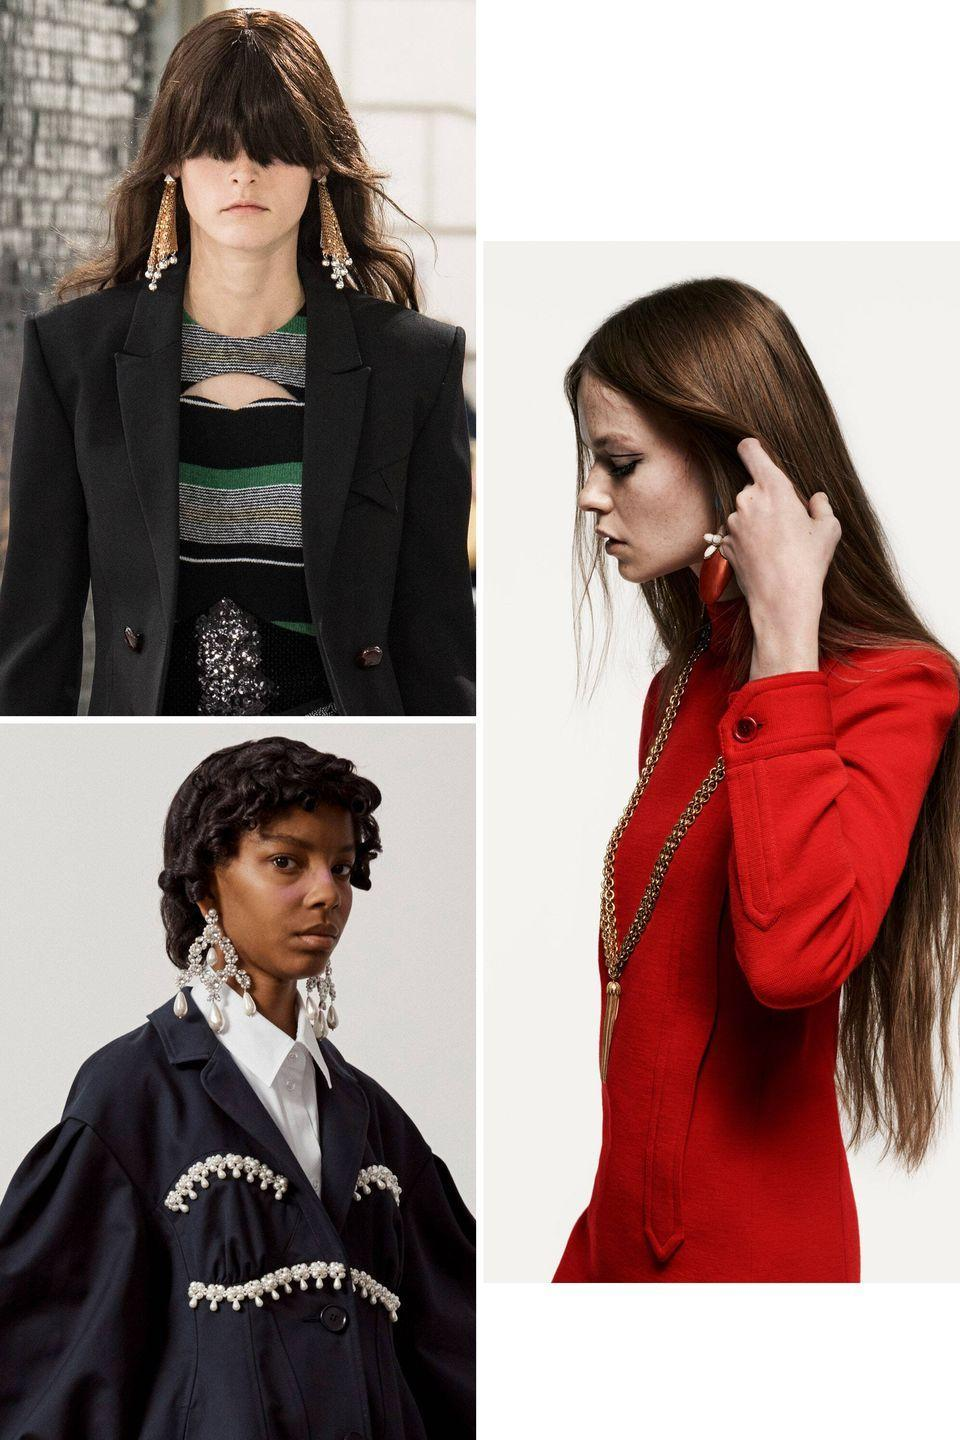 <p>Do your ears hang low? Do they wobble to and fro? Well, according to many of the spring 2021 collections, they should. From London to Paris, designer labels presented a variety of earrings that all dropped it like it was hot. </p><p>Saint Laurent, for example, displayed mod-inspired earrings made of resin and metal with flower-shaped posts. Simone Rocha offered ornate chandeliers made of white beads that resembled pearls. And Paco Rabanne reimagined its signature chain-mail dresses into shoulder-grazing earrings.</p><p>These earrings are not for shrinking violets, but for fire starters. They pop, frame the face, and (sticking with the heat analogy) truly sizzle. </p><p><em>Clockwise from left: Paco Rabanne, Saint Laurent, Simone Rocha.</em></p>